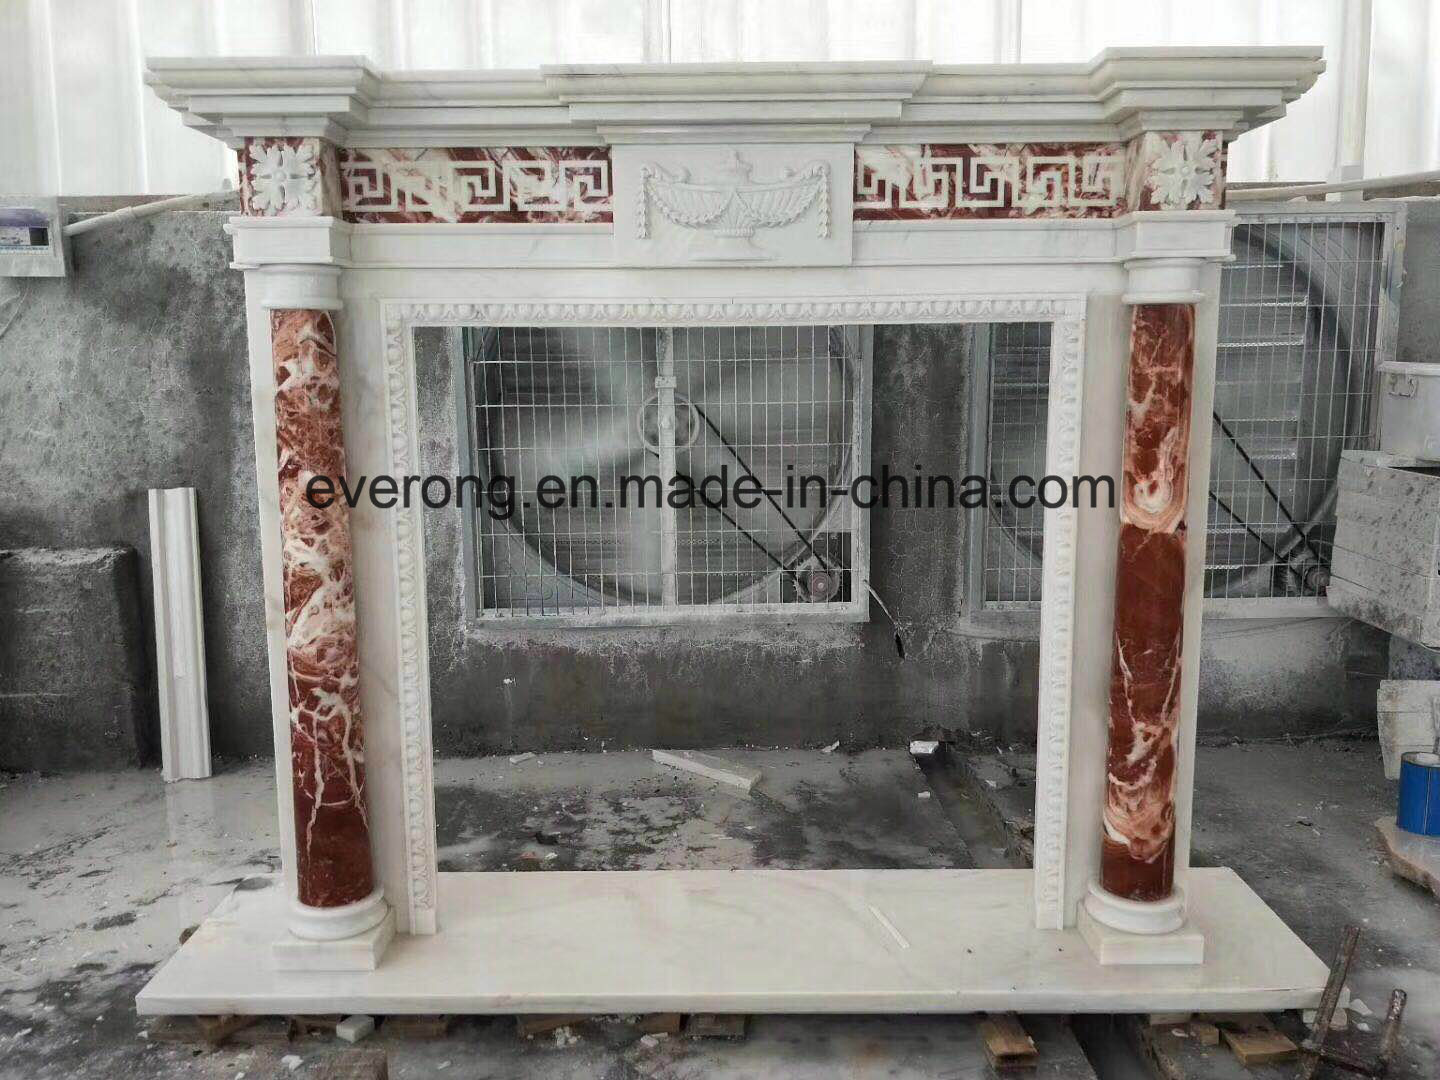 China Fabulous Two Tone Natural Marble Fireplace Surround In White And Red Marble China Marble Fireplace Frame Marble Sculpture Fireplace